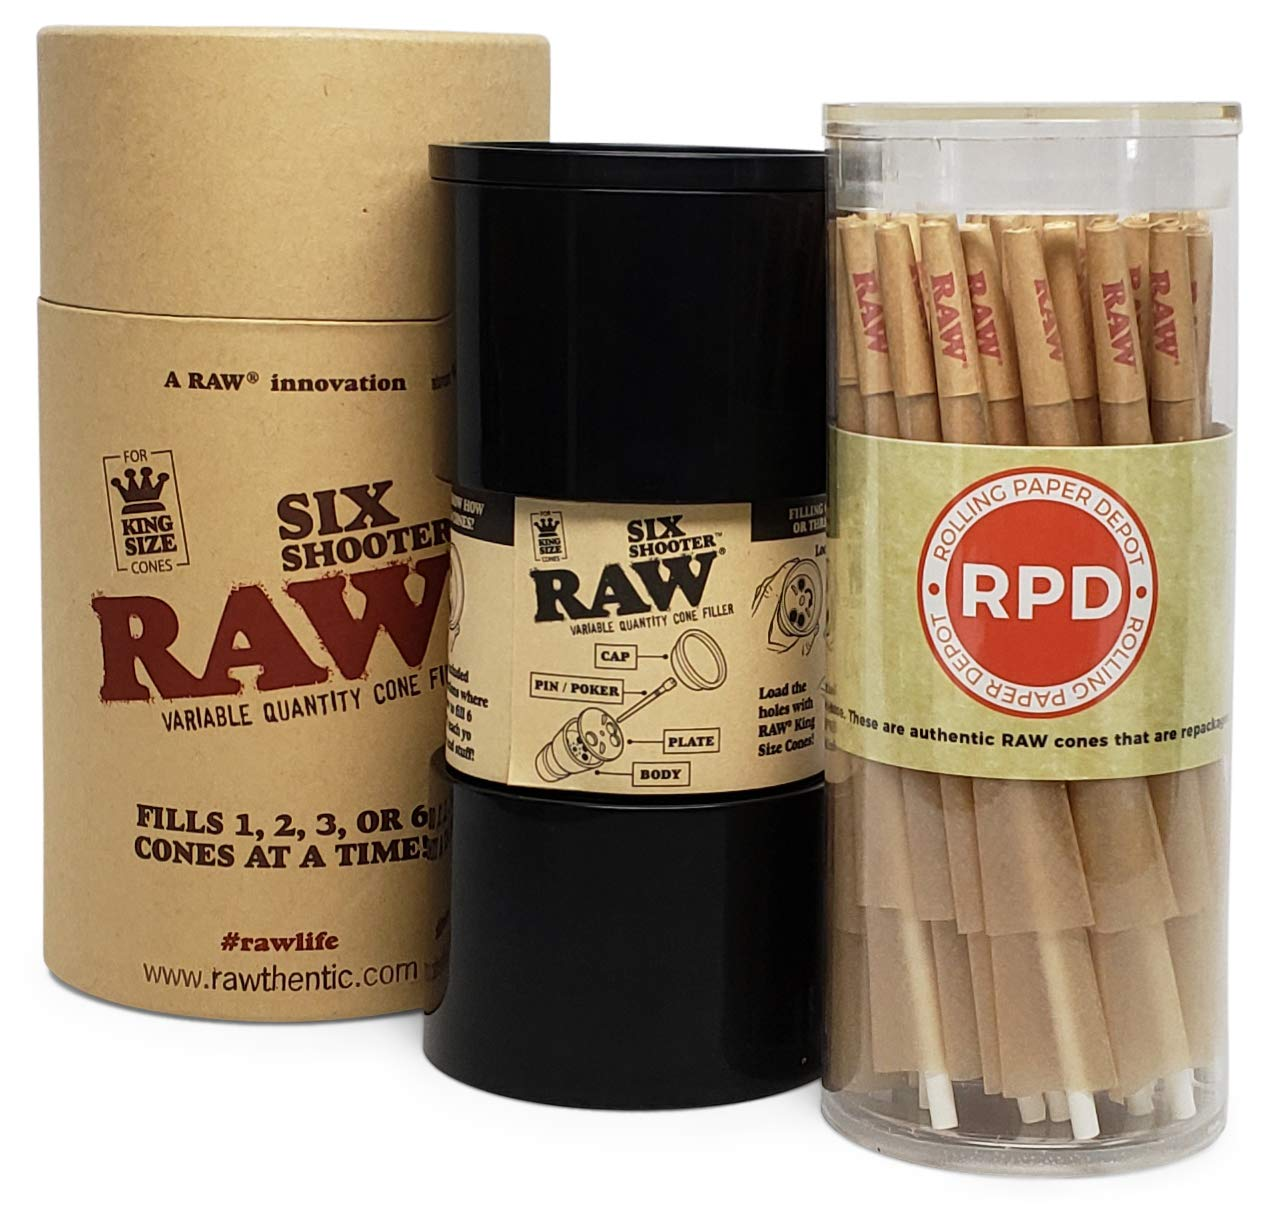 RAW Six Shooter Cone Filler with 50 RAW Classic King Size Cones by Rolling Paper Depot